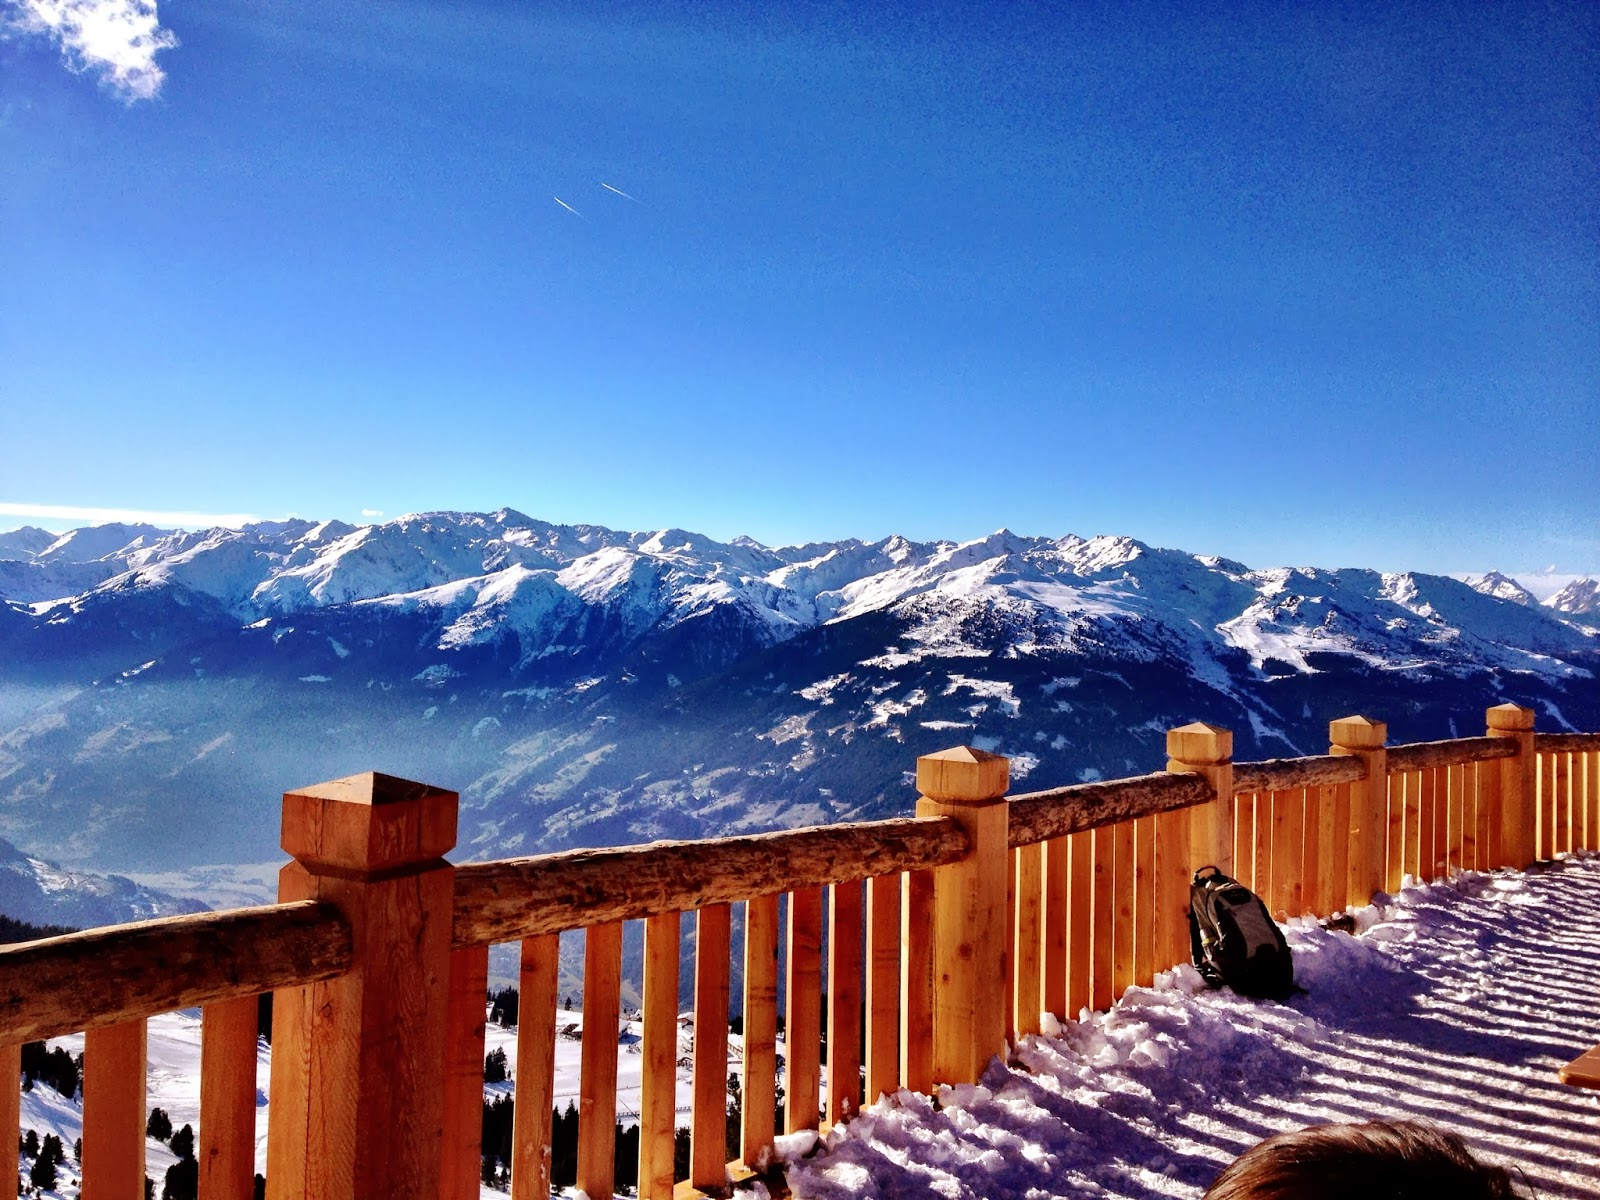 The view of the Alps during lunch